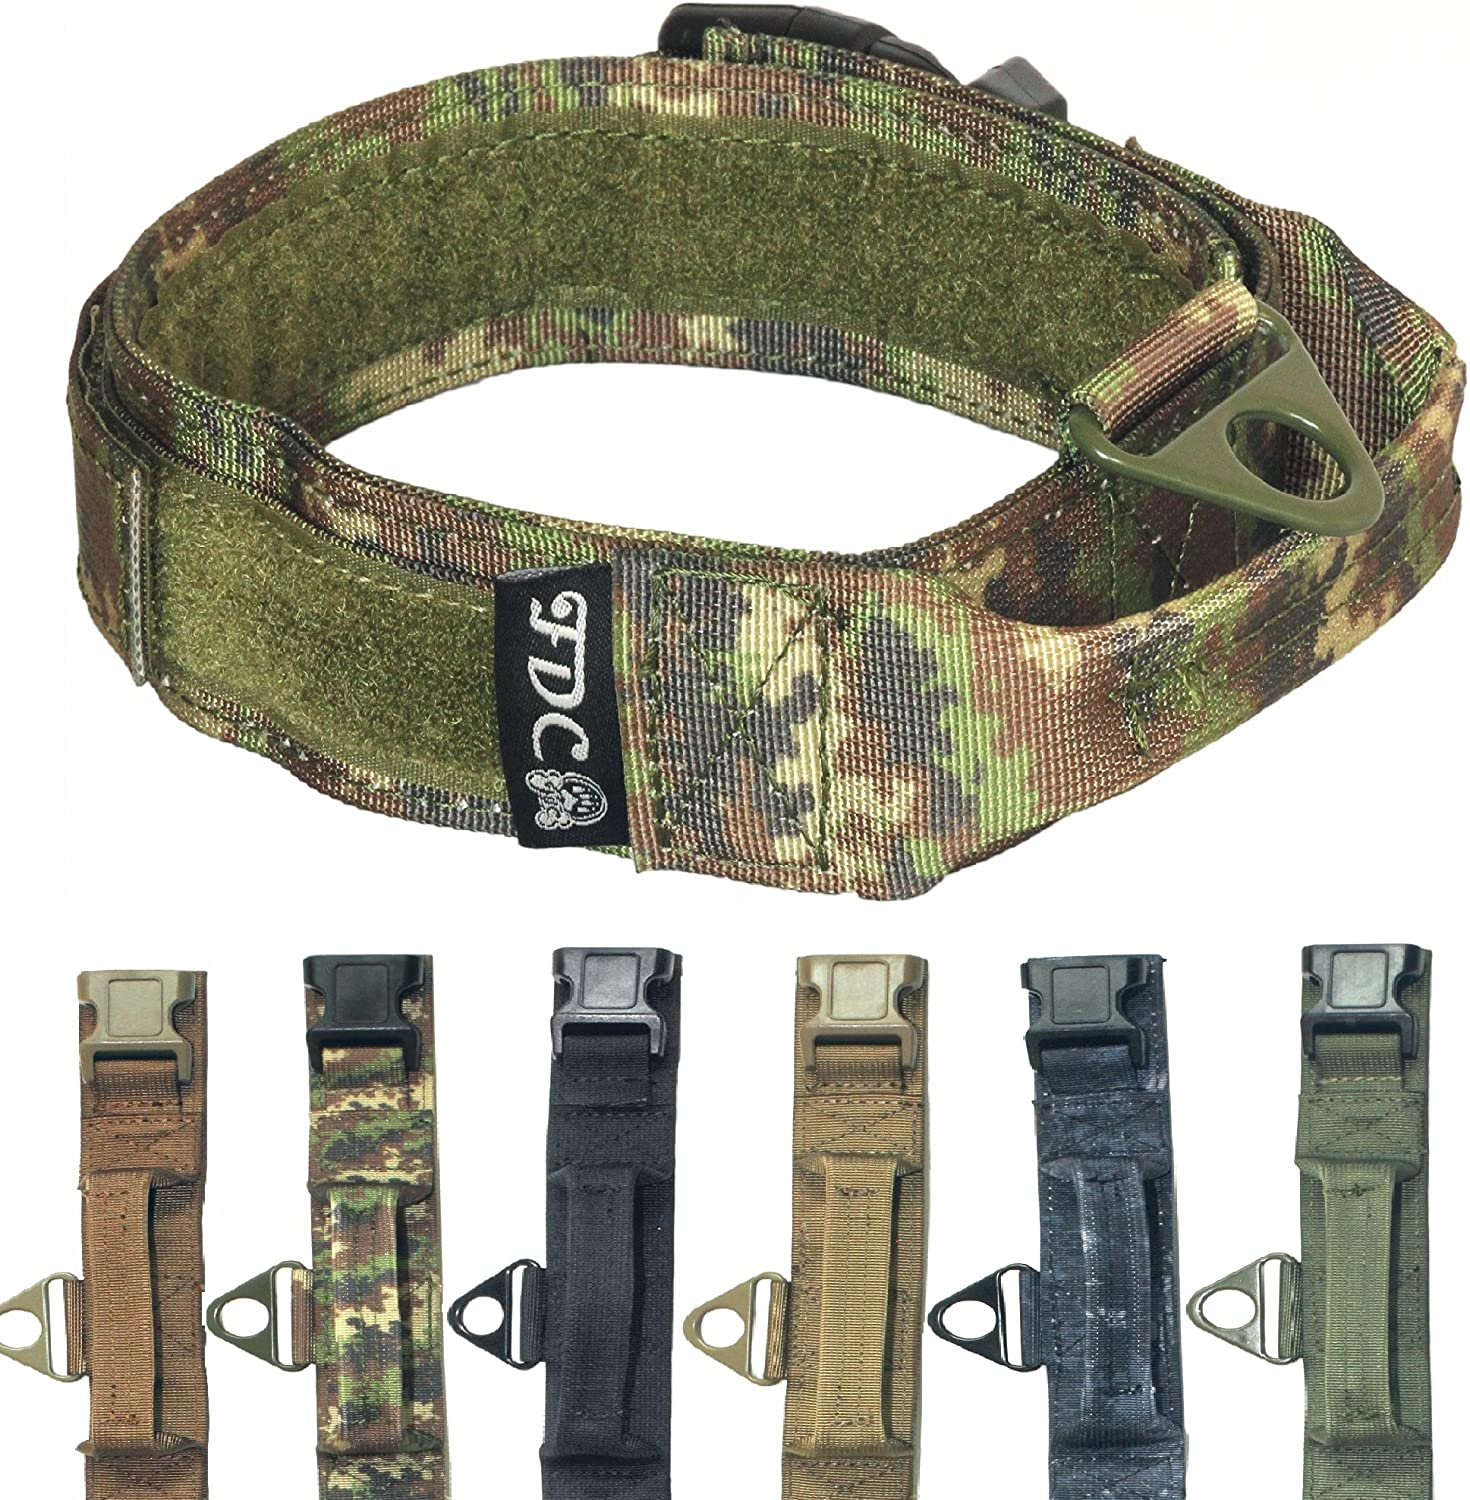 FDC Heavy Duty Military Army Tactical K9 Dog Collars Handle Hook & Loop Width 1.5in Plastic Buckle Medium Large (XL  Neck 14   18 , Camouflage)